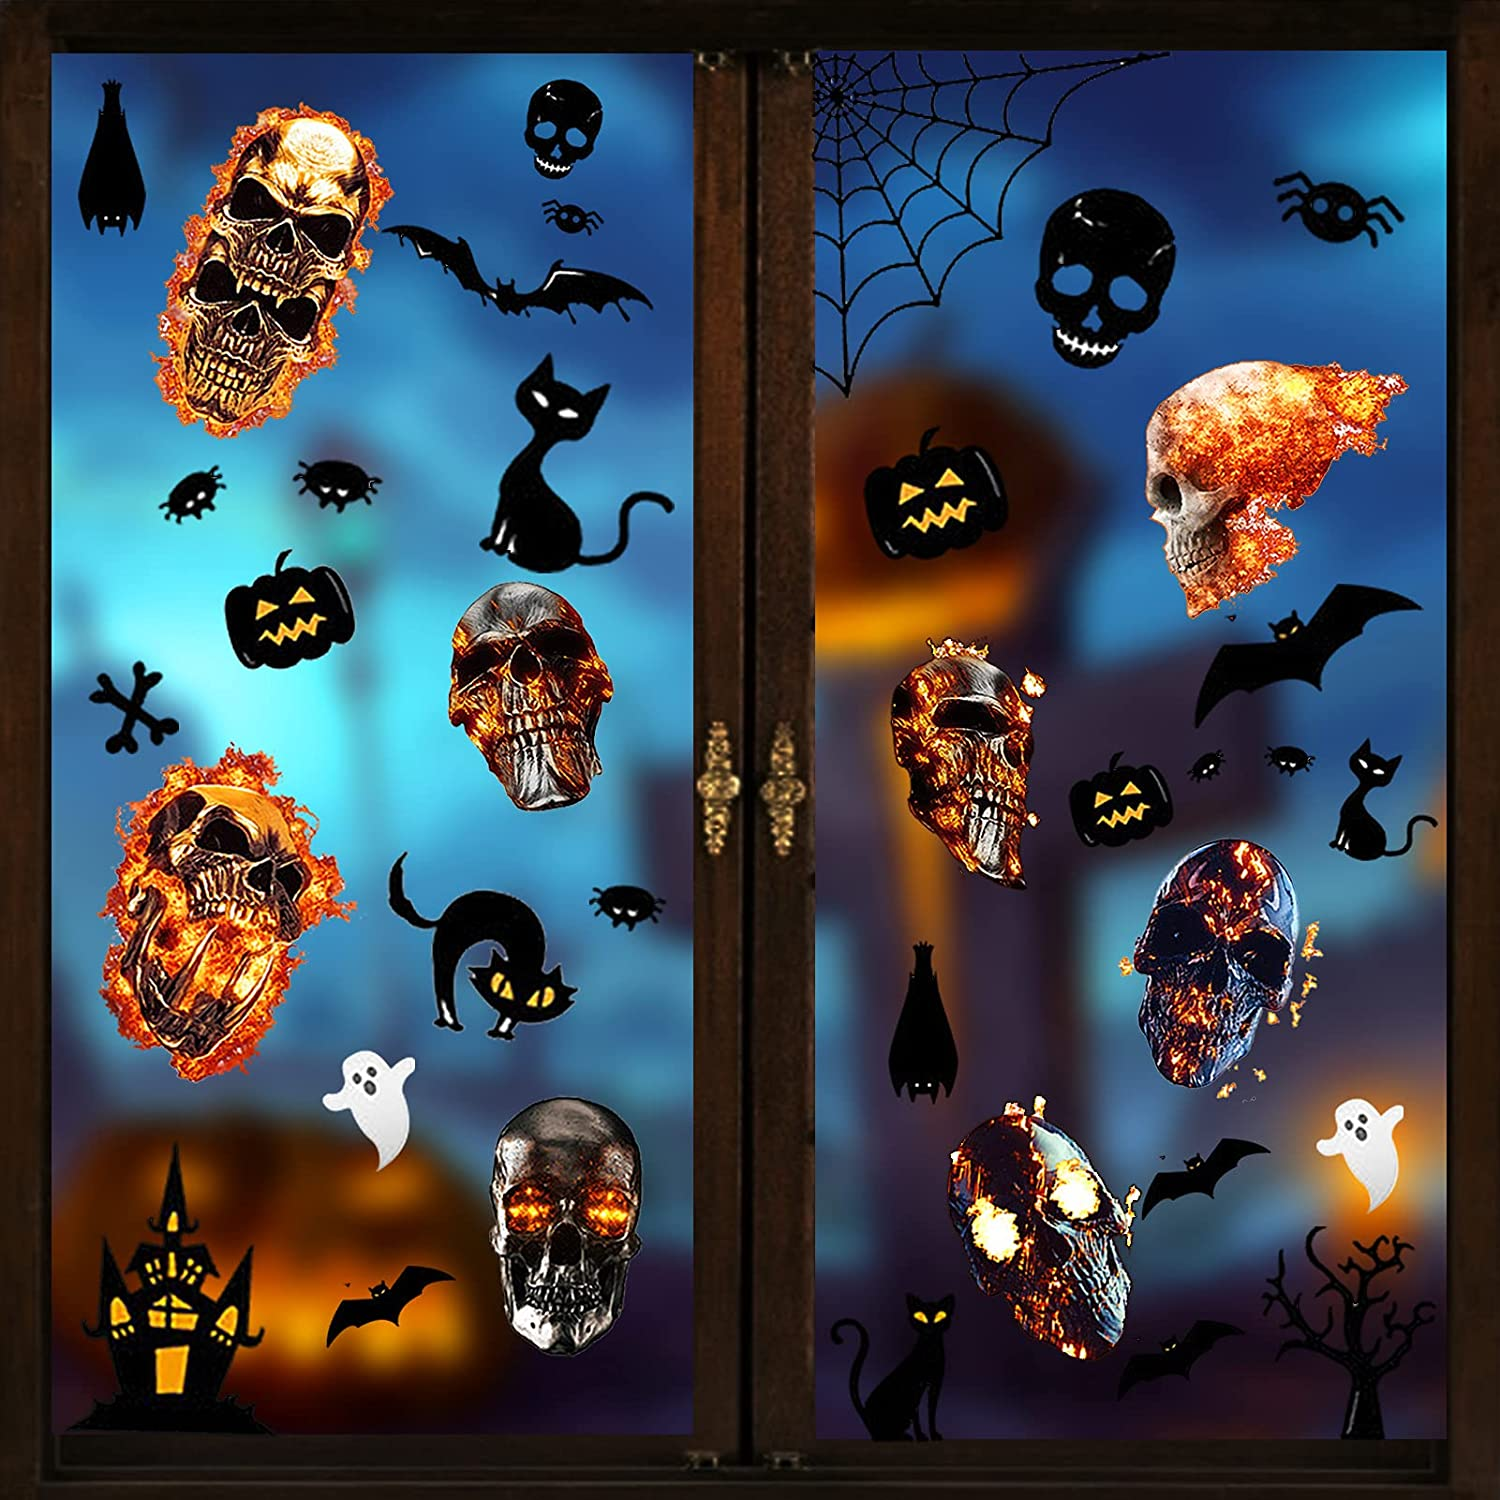 Halloween Window Clings 96 Pcs 3D Scary Flaming Skull Realistic Max 42% Popularity OFF